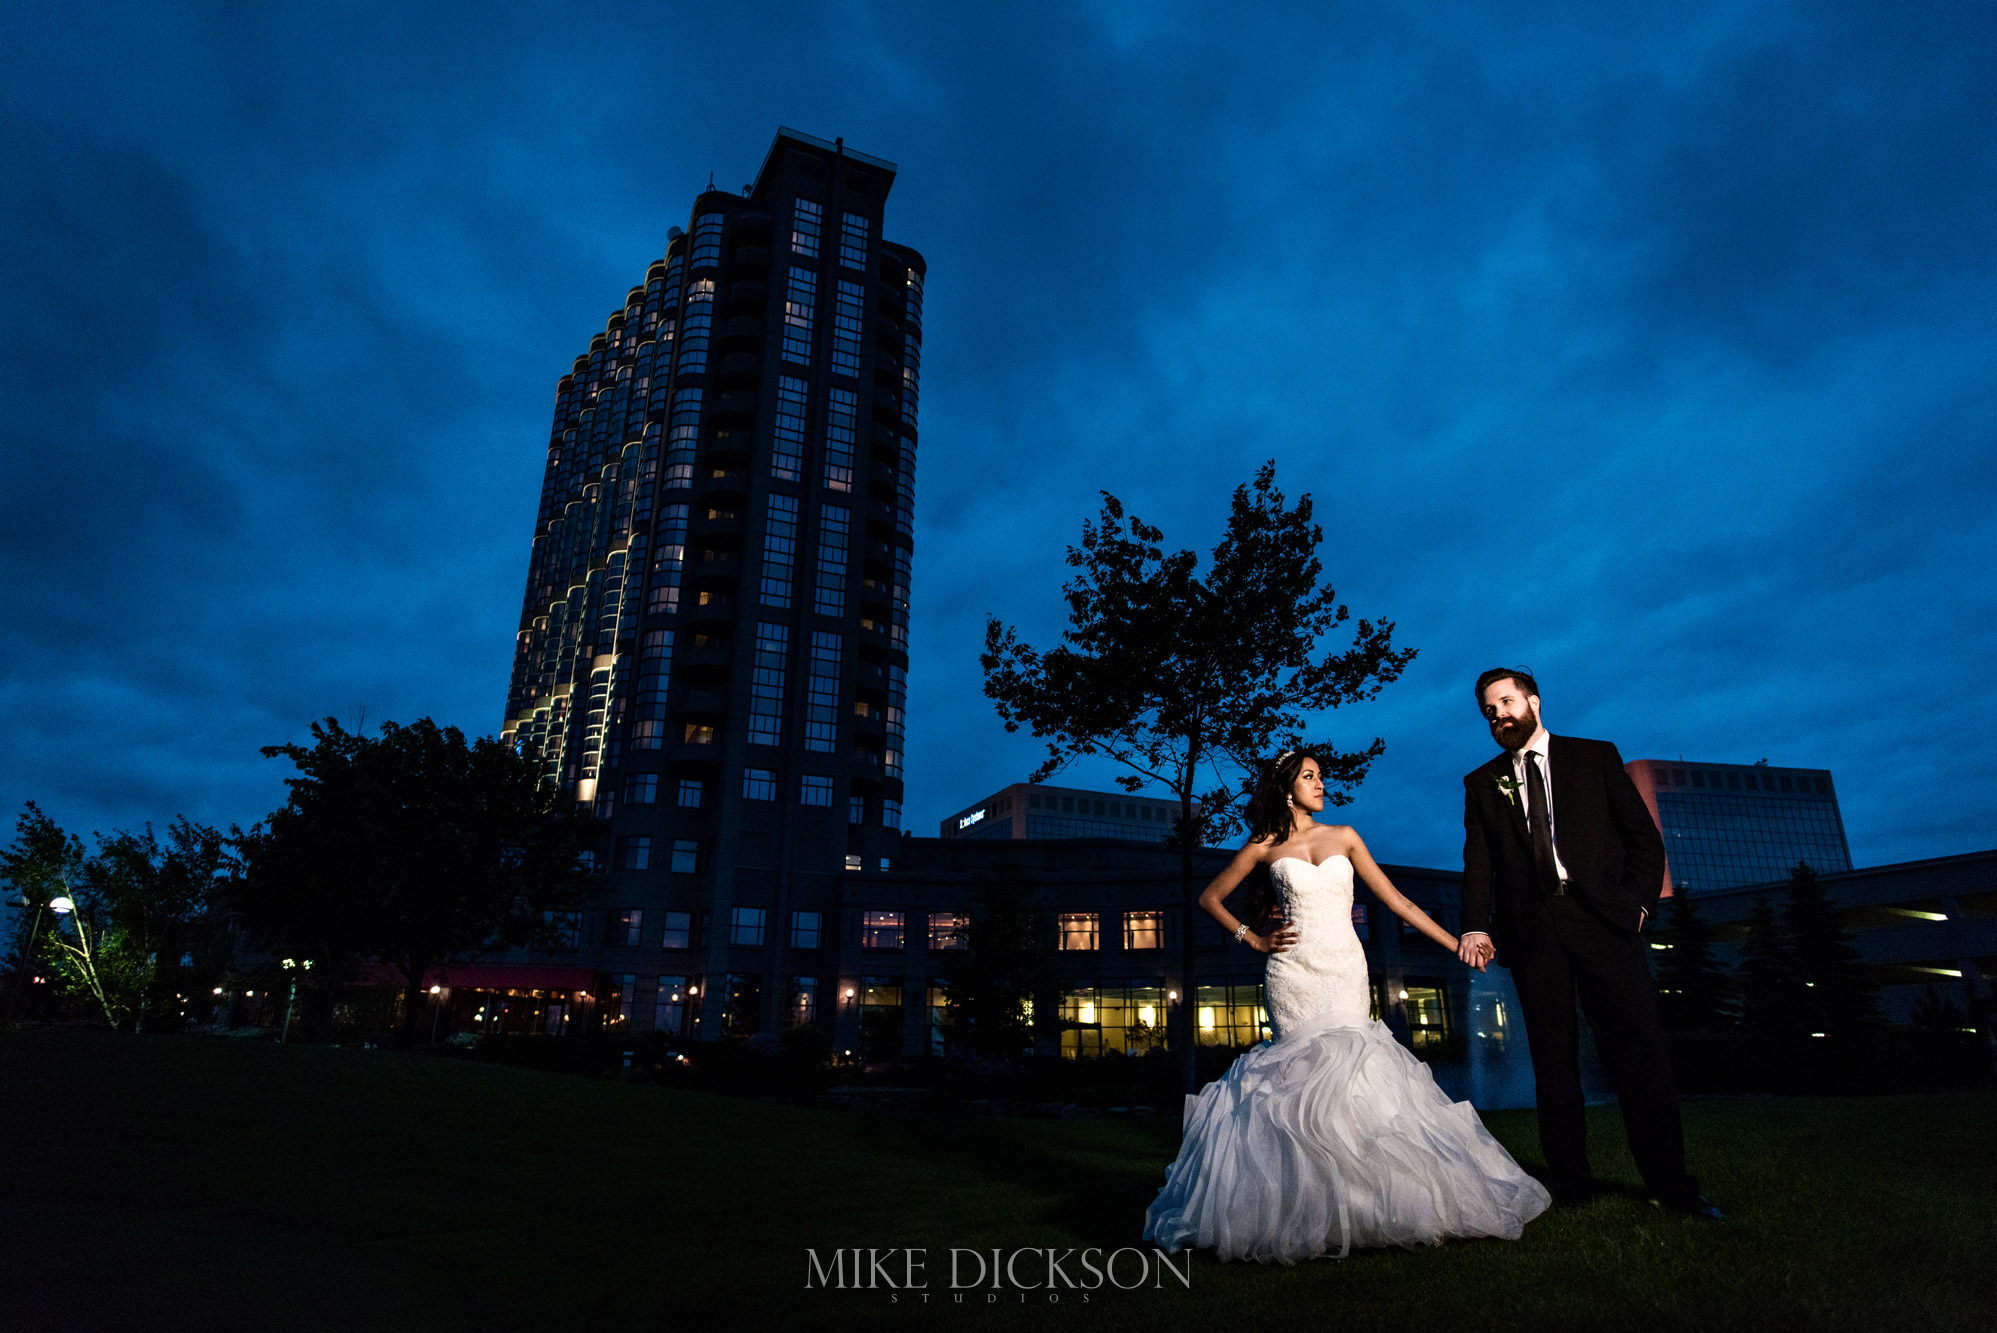 tasha-alex-036-brookstreet-hotel-ottawa-wedding-photographer-mike-dickson-502r-3967-md2